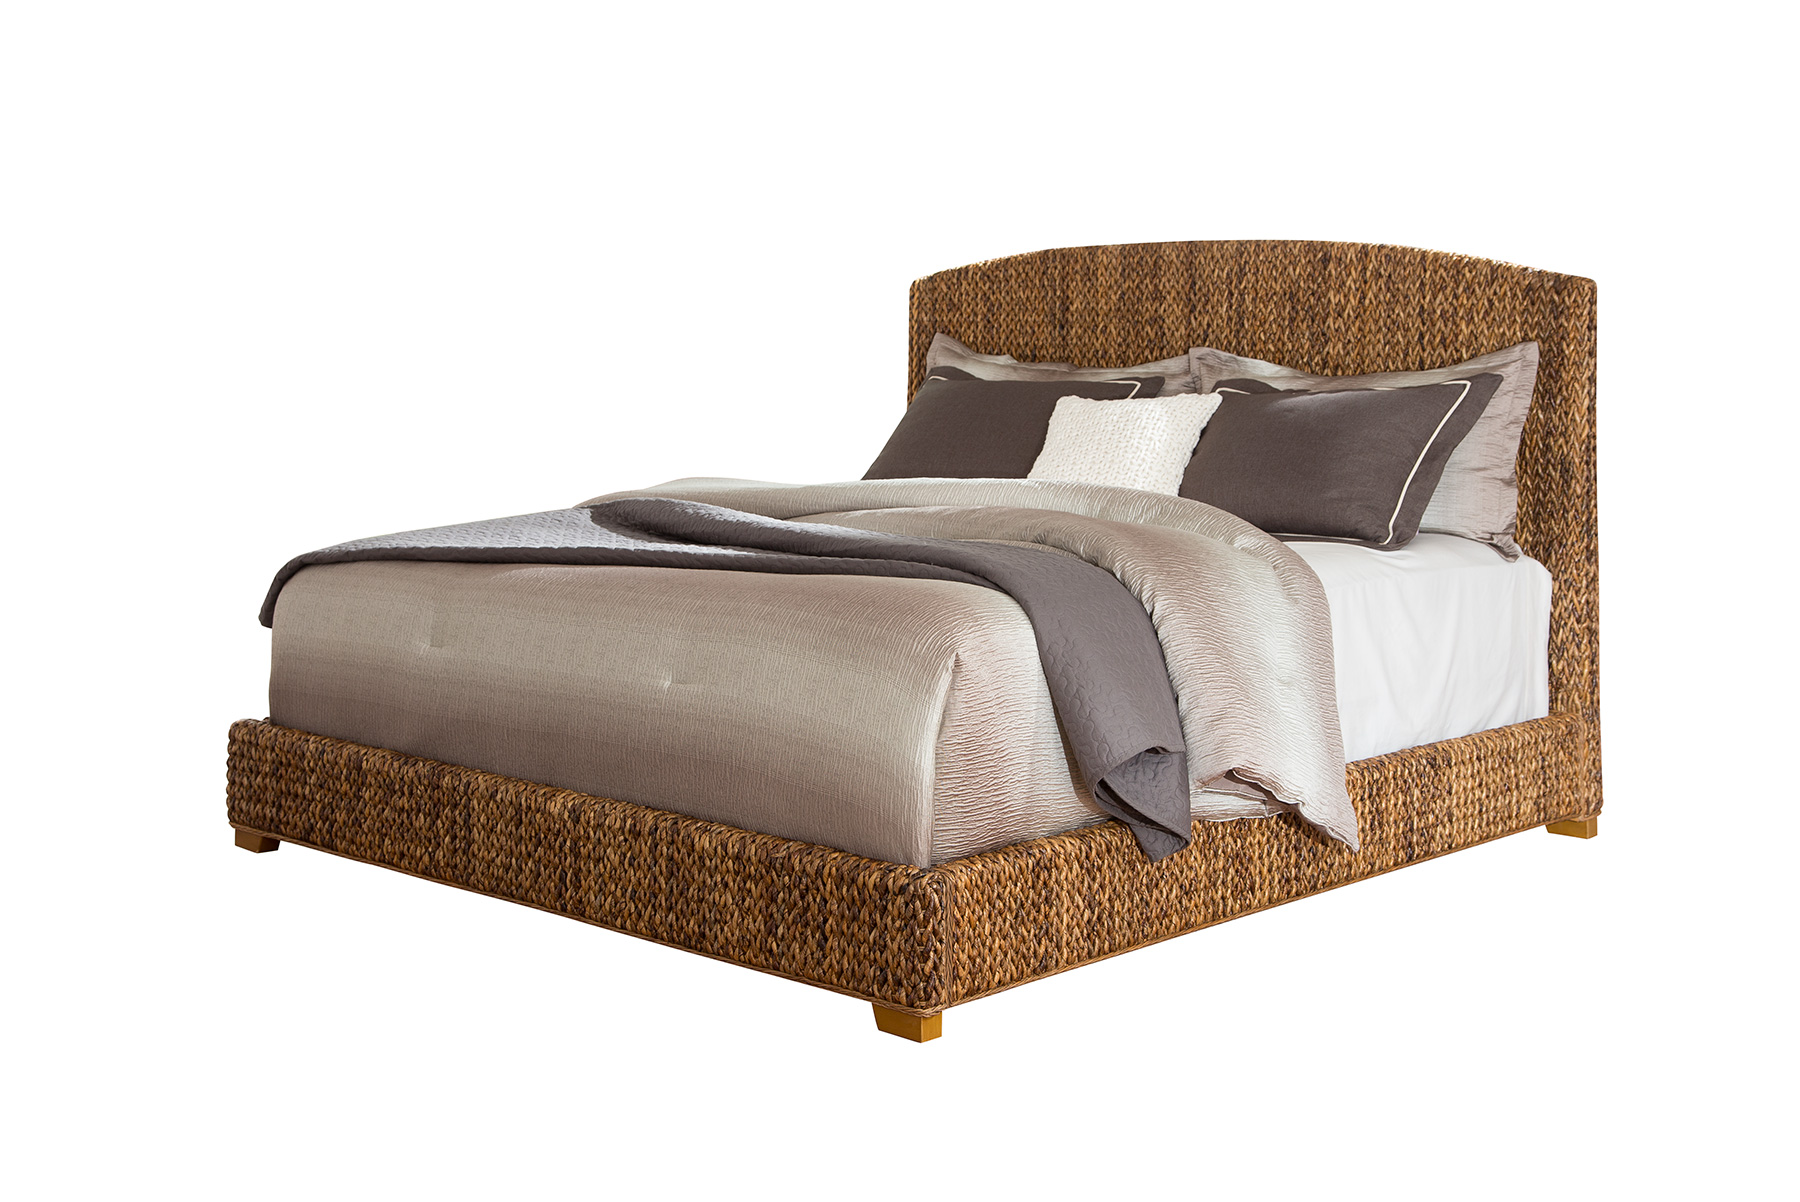 Laughton Woven Banana Leaf Bed Image